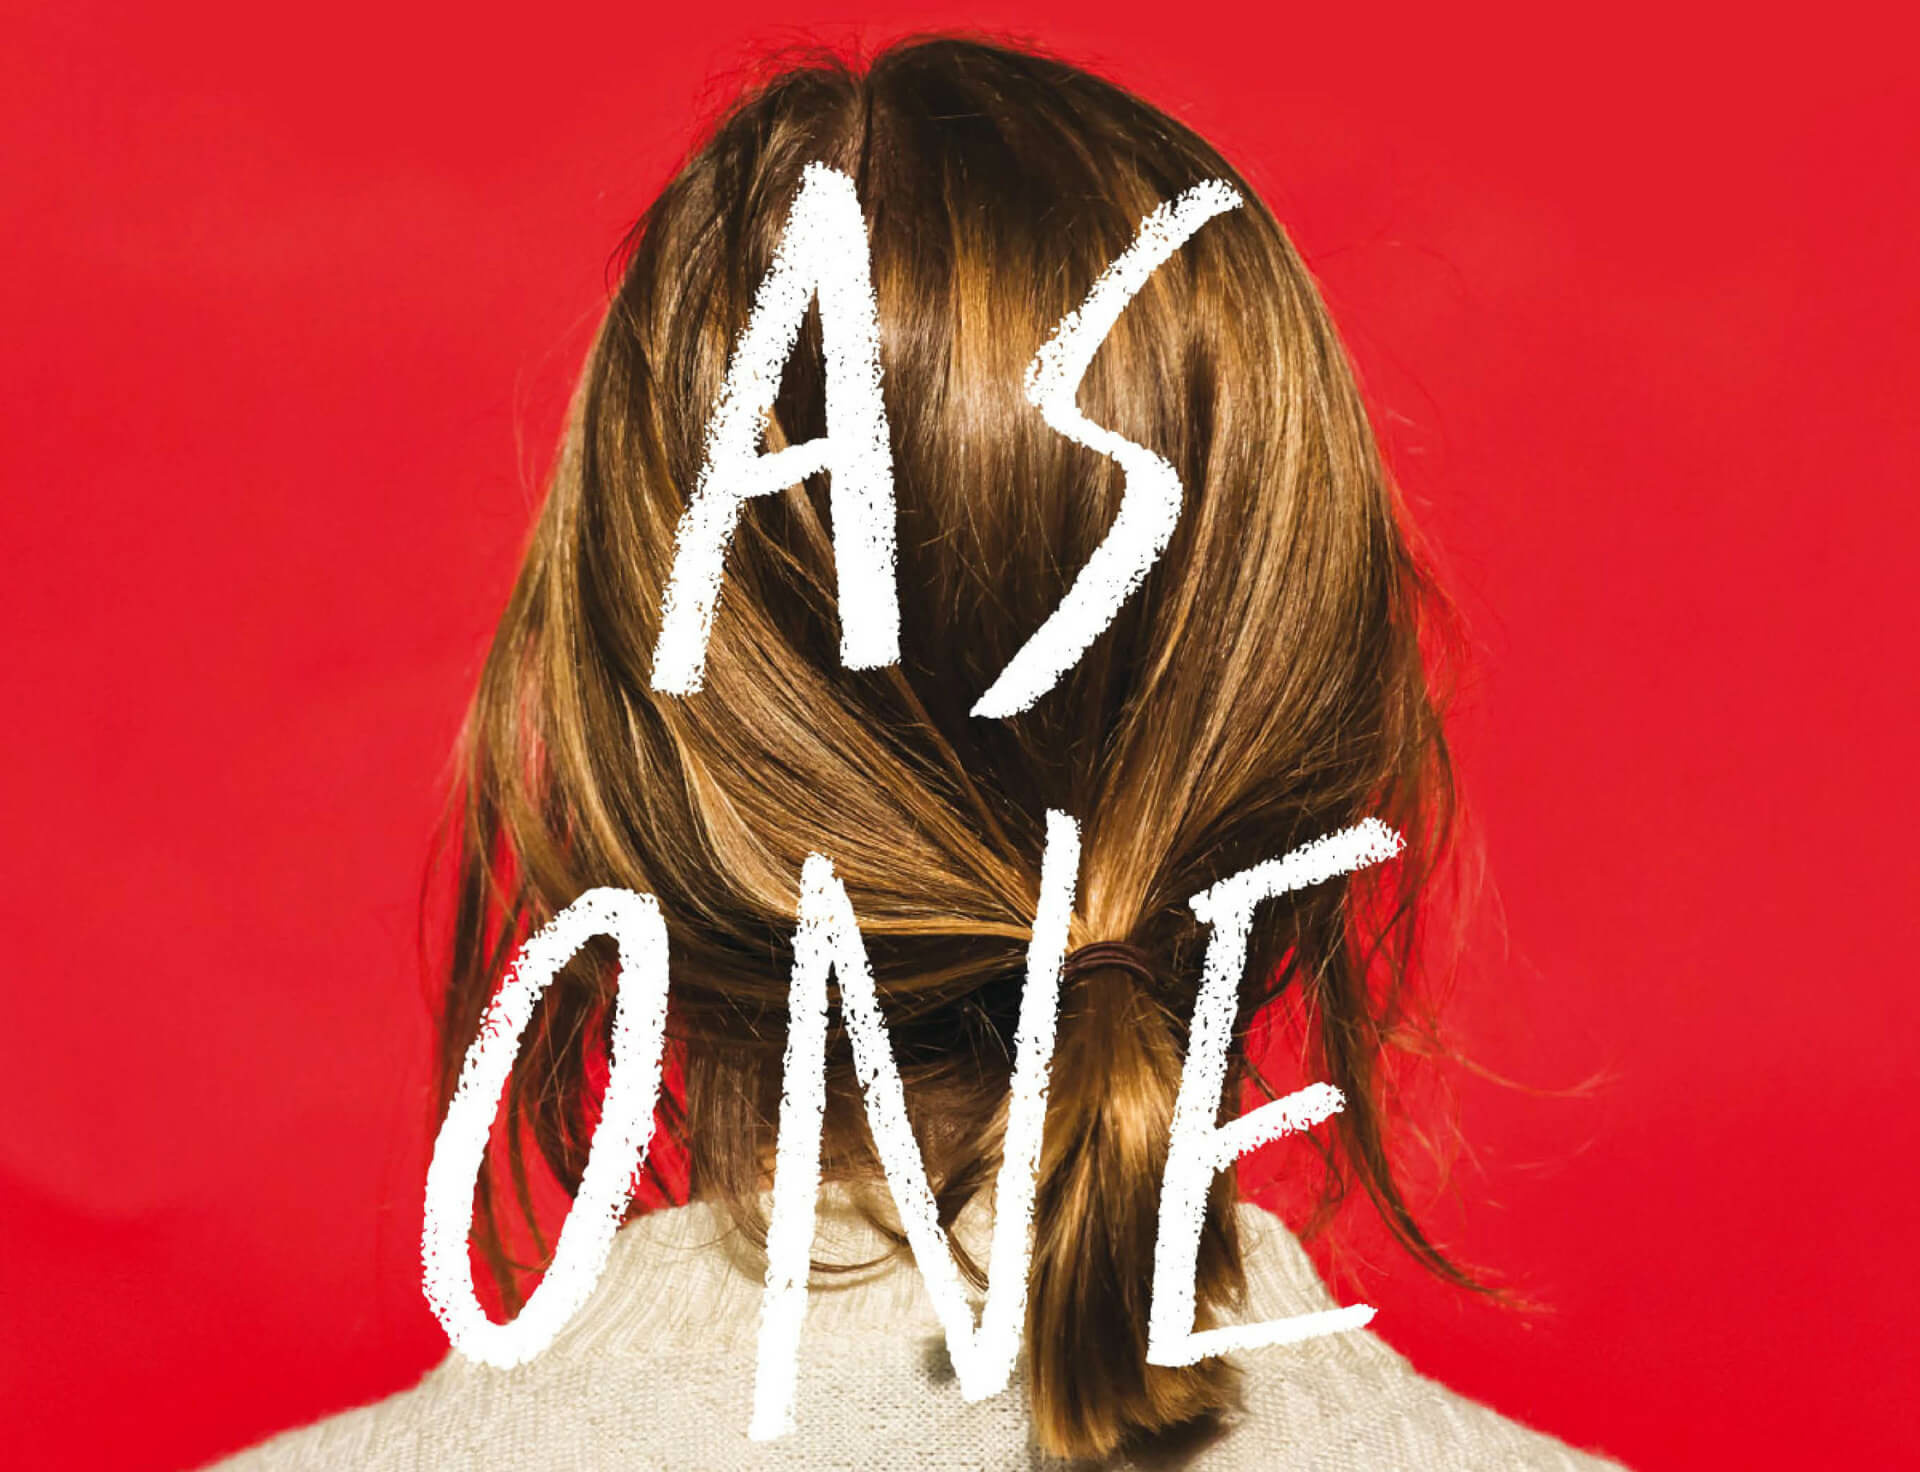 NEON + the Marina Abramović Institute present 'As One'